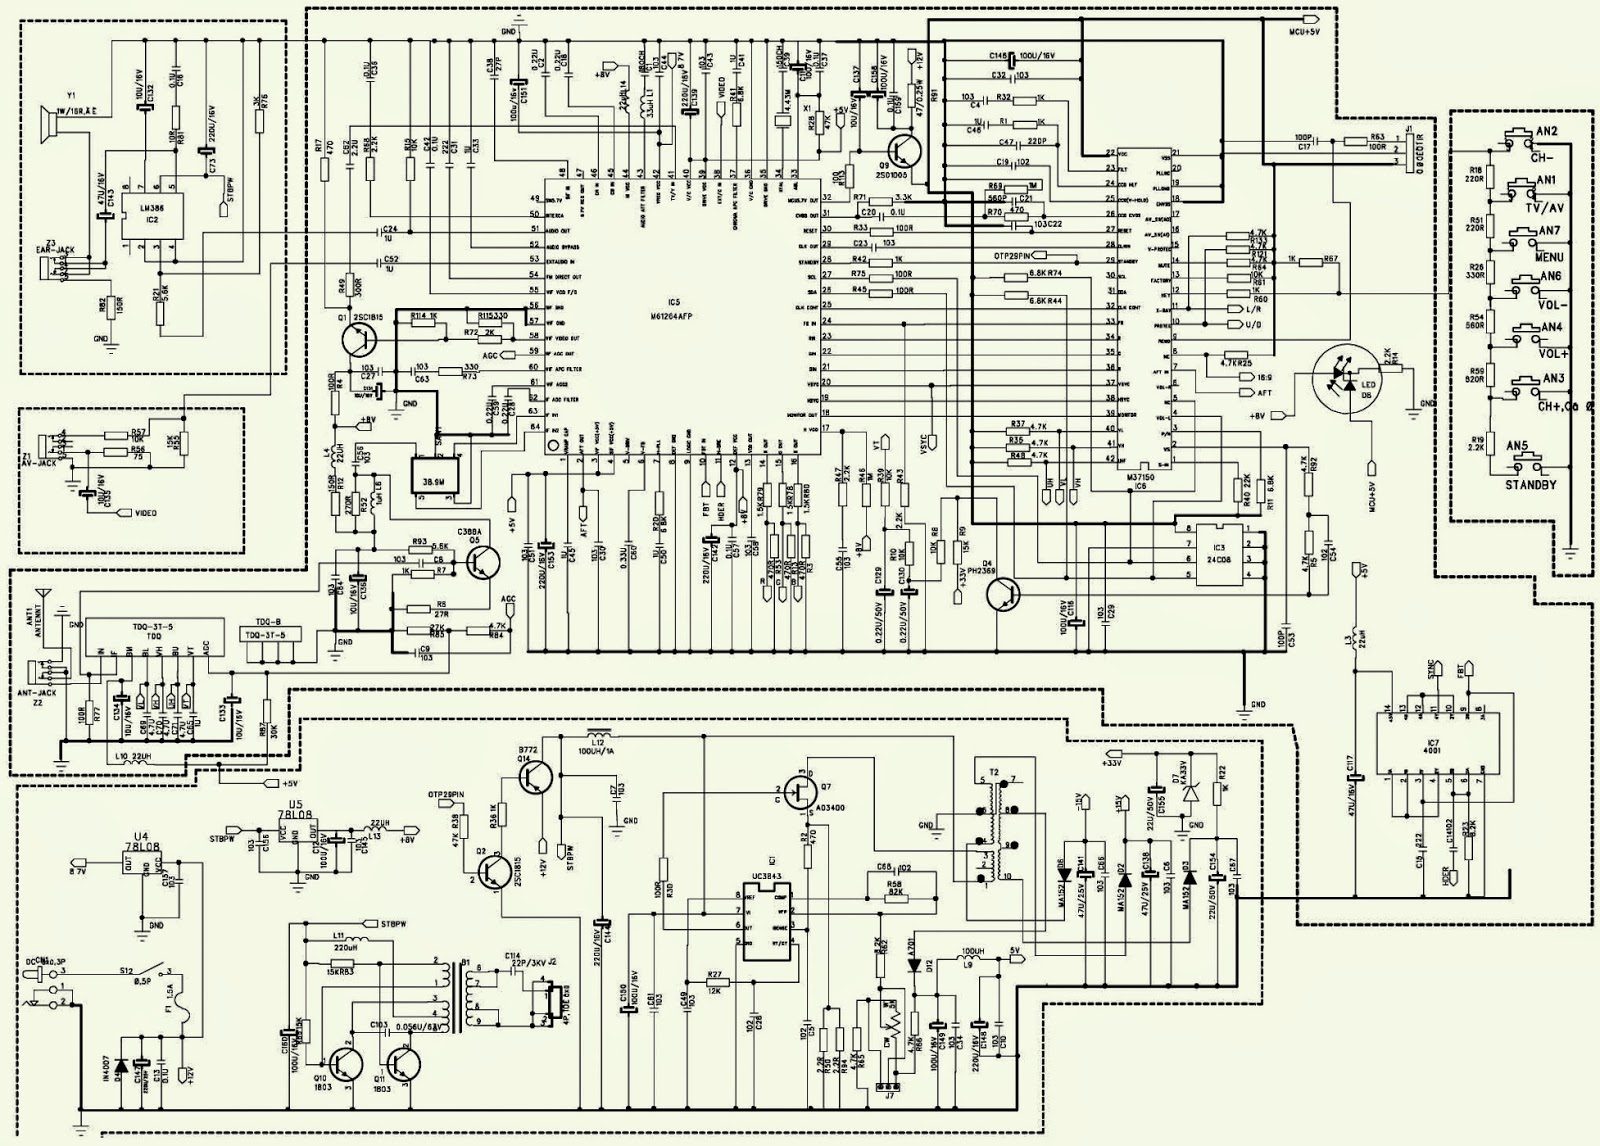 small resolution of hyundai tv 800 7 inch tft lcd tv schematic circuit diagram lcd tv schematic diagram 32 inch insignia tv schematic circuit diagram